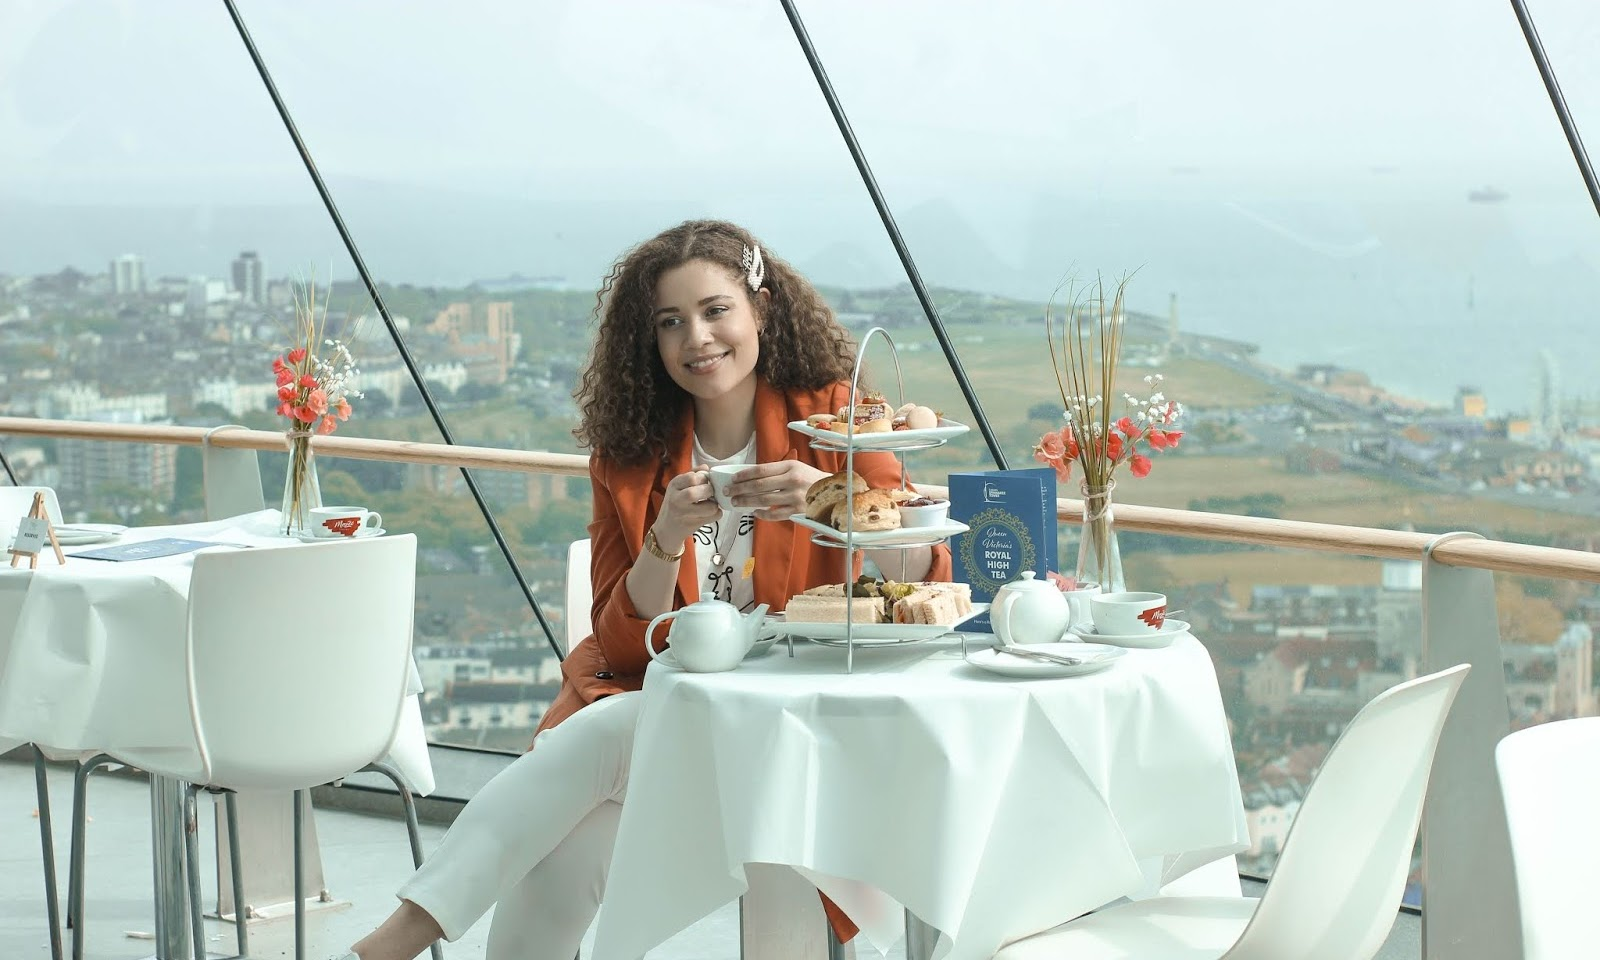 Royal Afternoon Tea in the Clouds with Spinnaker Tower, Portsmouth